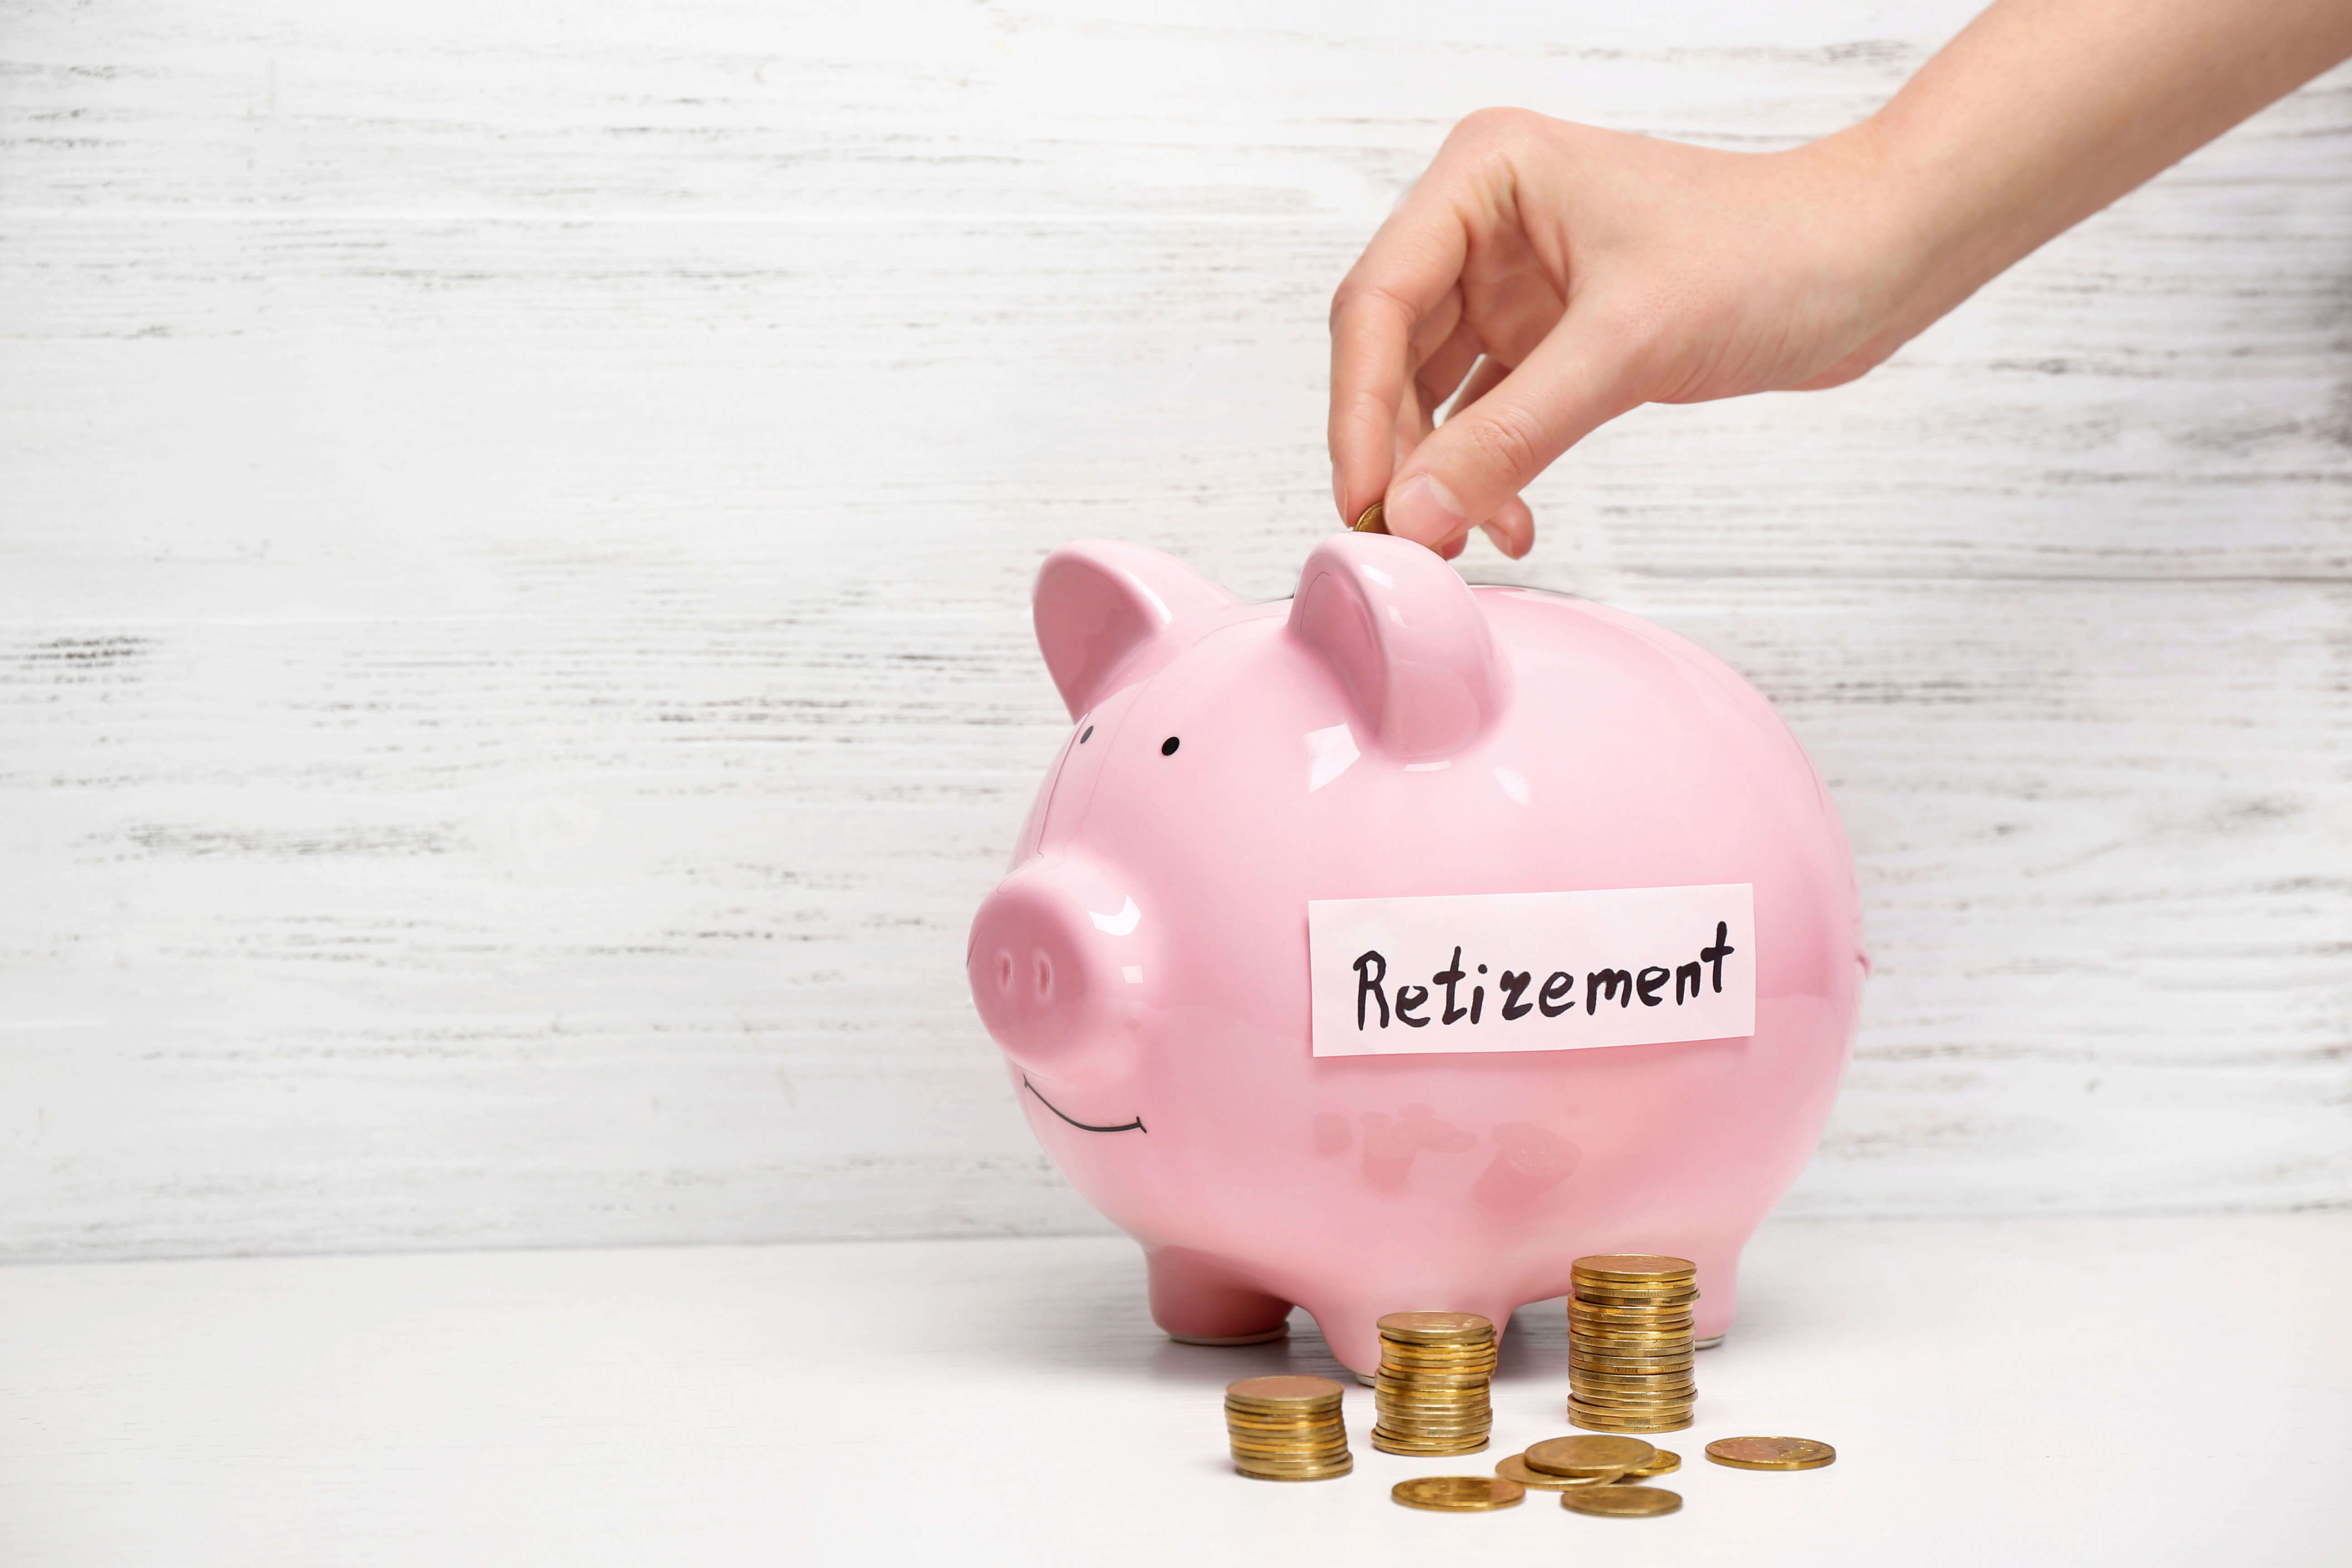 plan for retirement